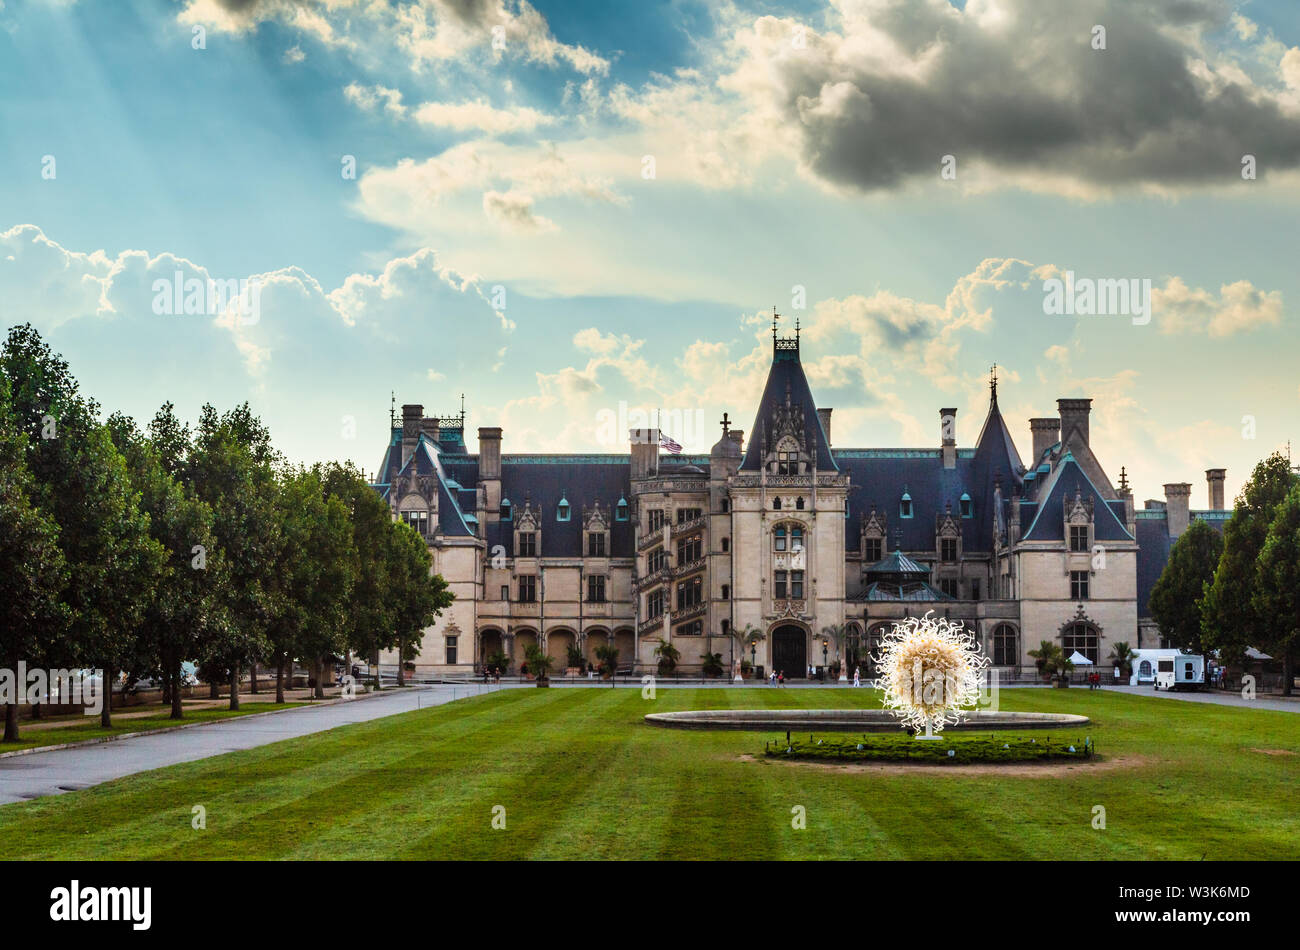 Biltmore House on the Biltmore Estate, Asheville, North Carolina, USA. On the foreground lawn is a work by glass artist Dale Chihuly. - Stock Image